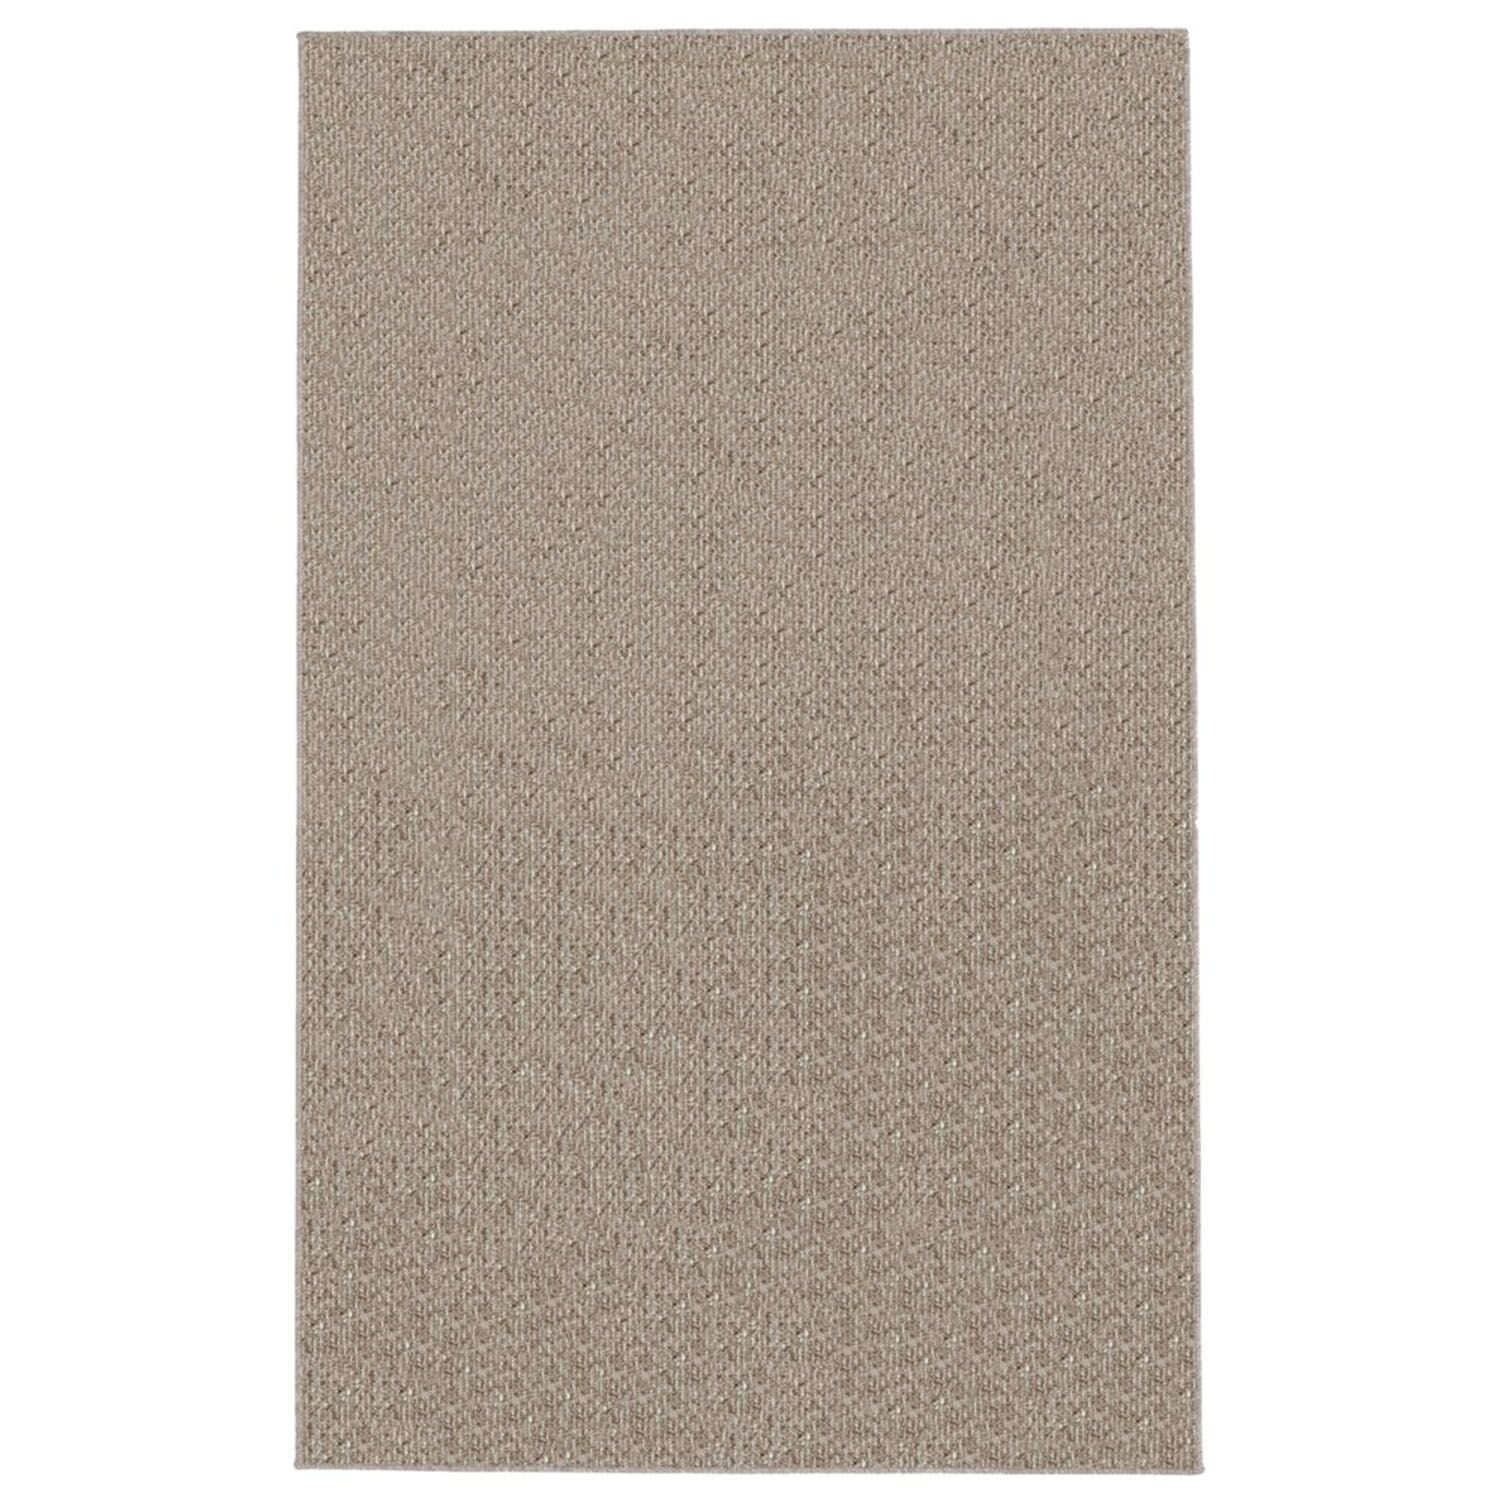 Cannon Brown Area Rug Rug Size: 8' x 10'